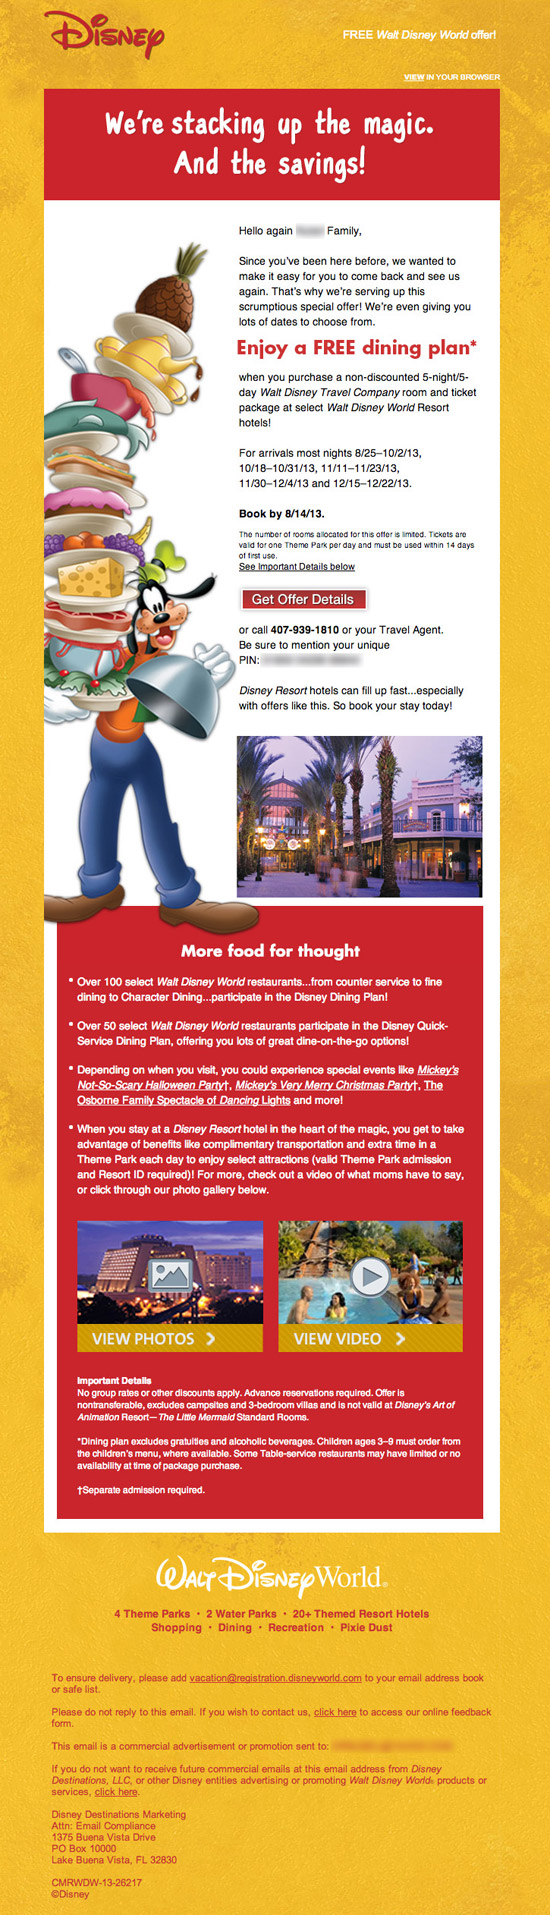 Free Disney Dining PIN Code